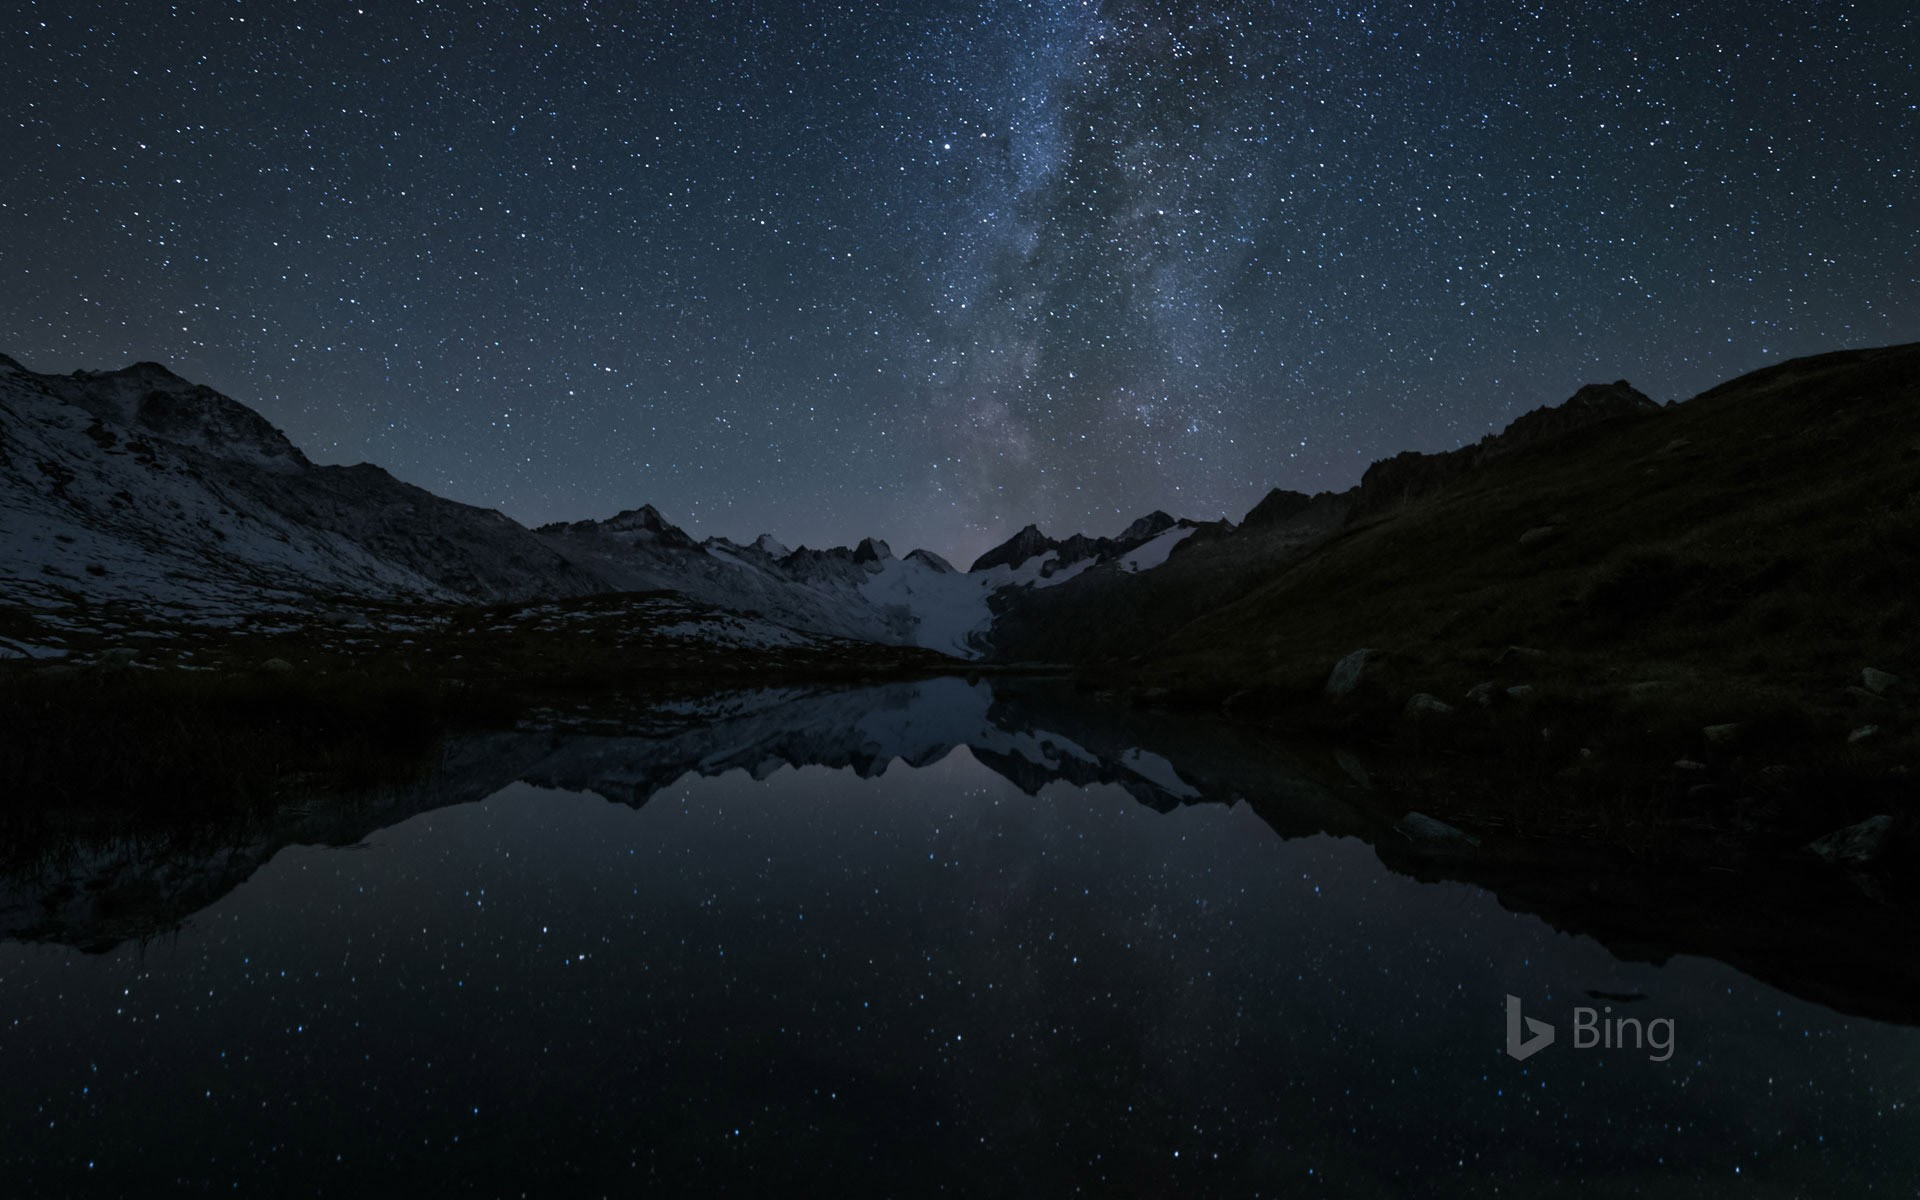 Stars reflected in the Totensee, a mountain lake at Grimsel Pass, Switzerland